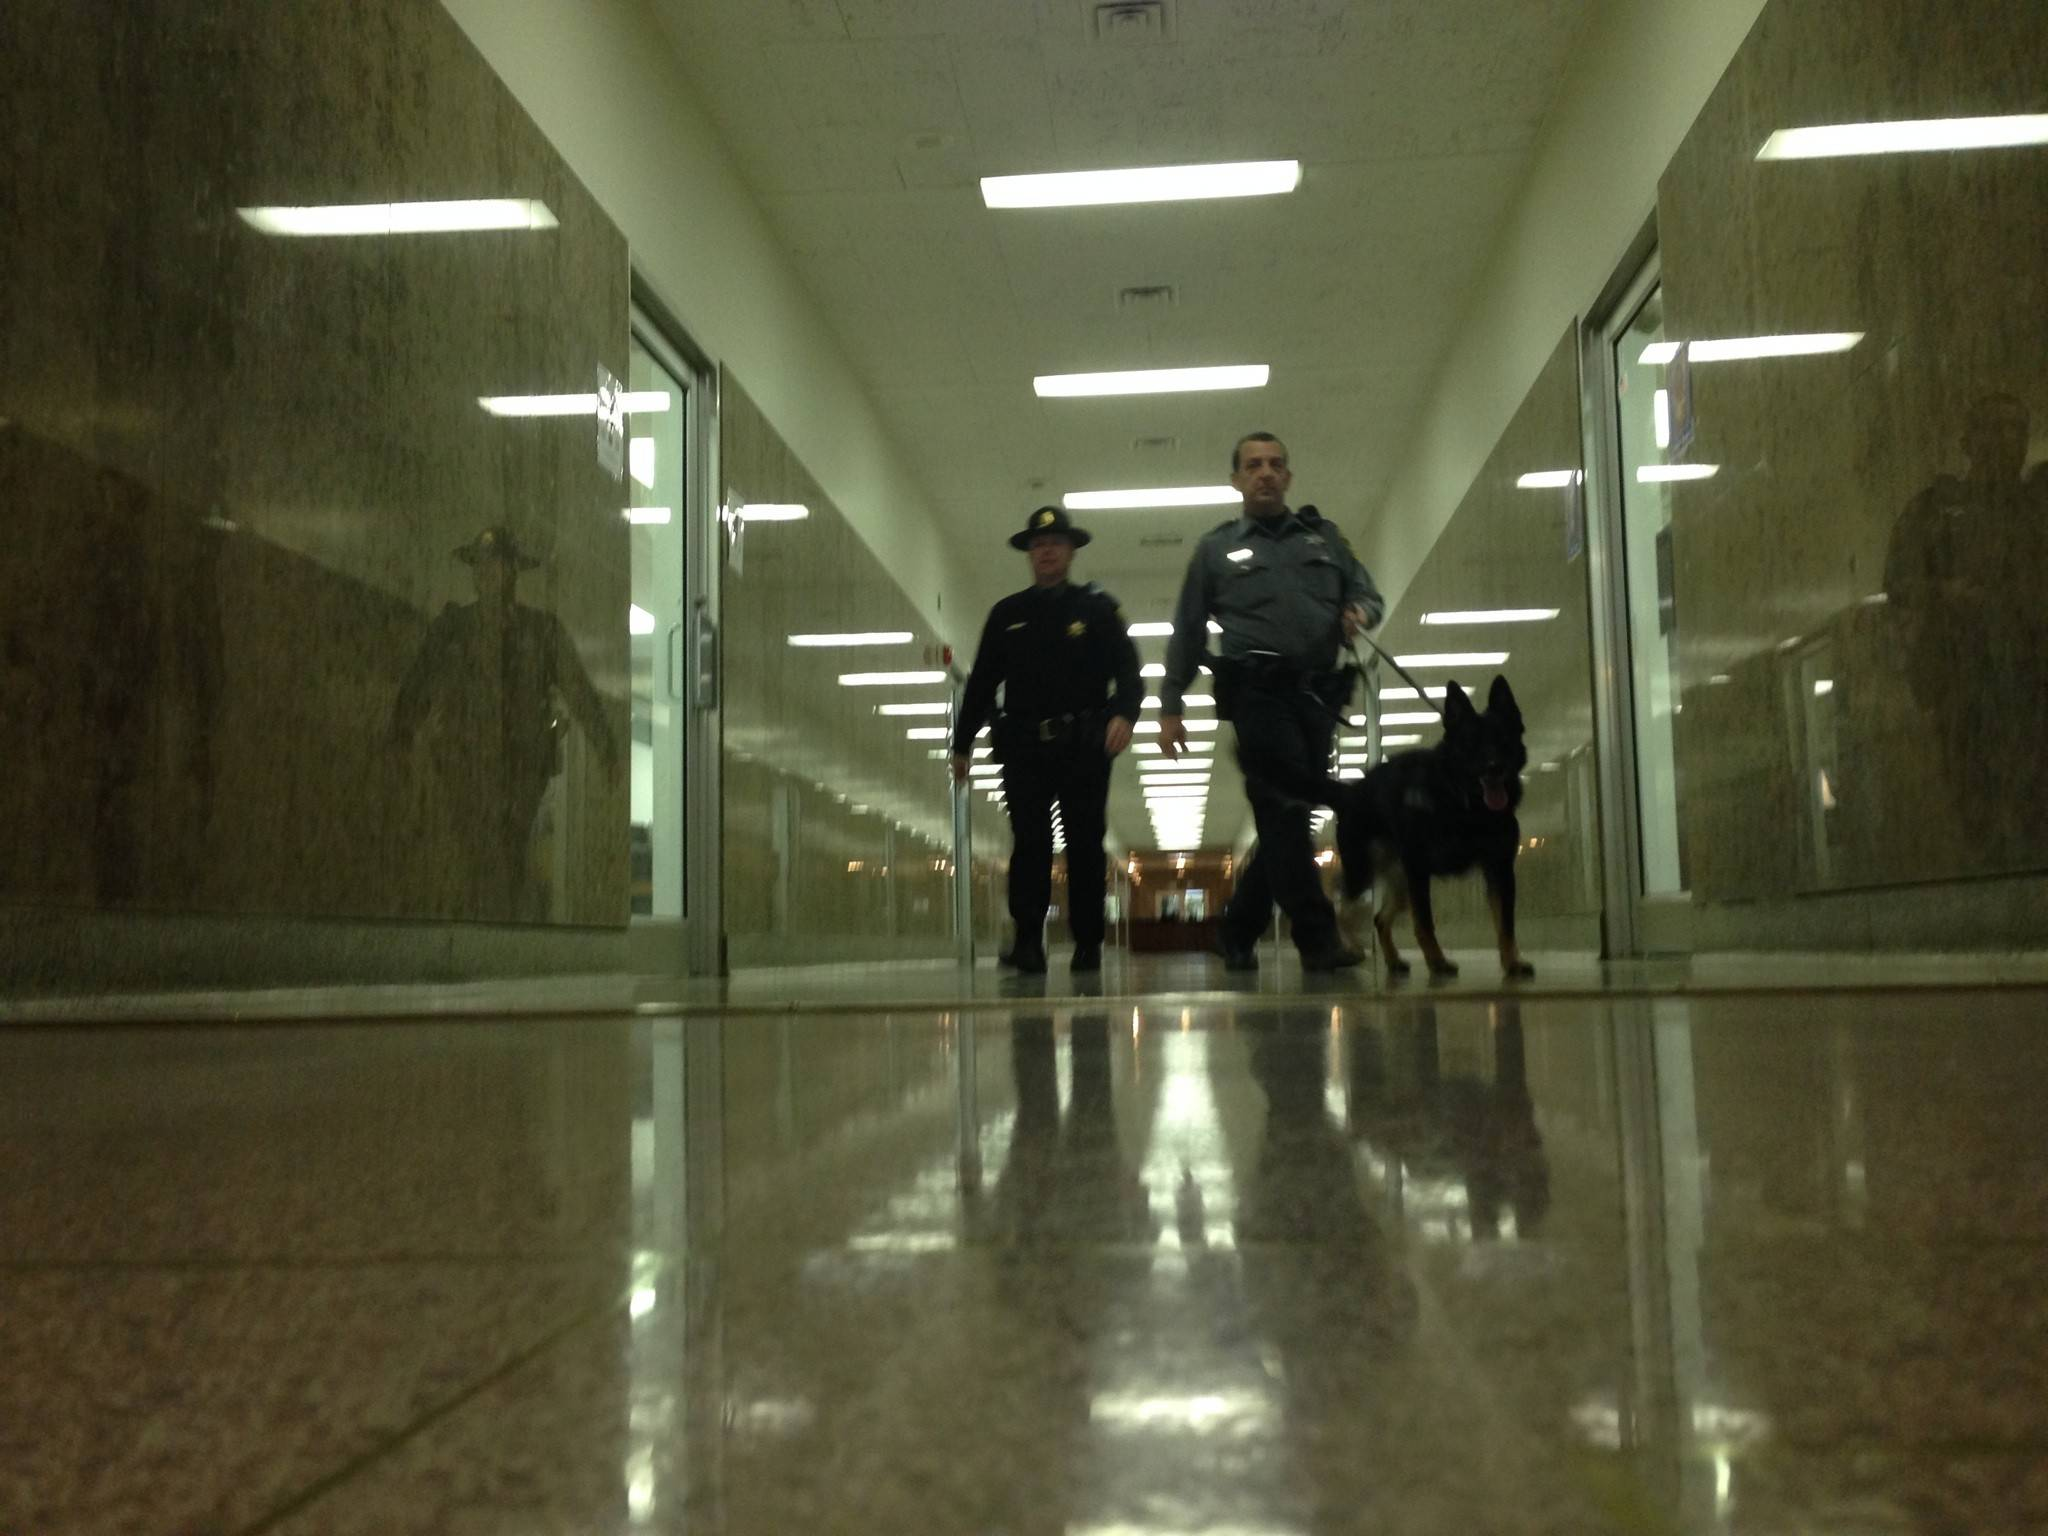 Two Secretary of State police officers walk in the hallway by state Rep. Keith Farnham's Springfield office Friday afternoon.